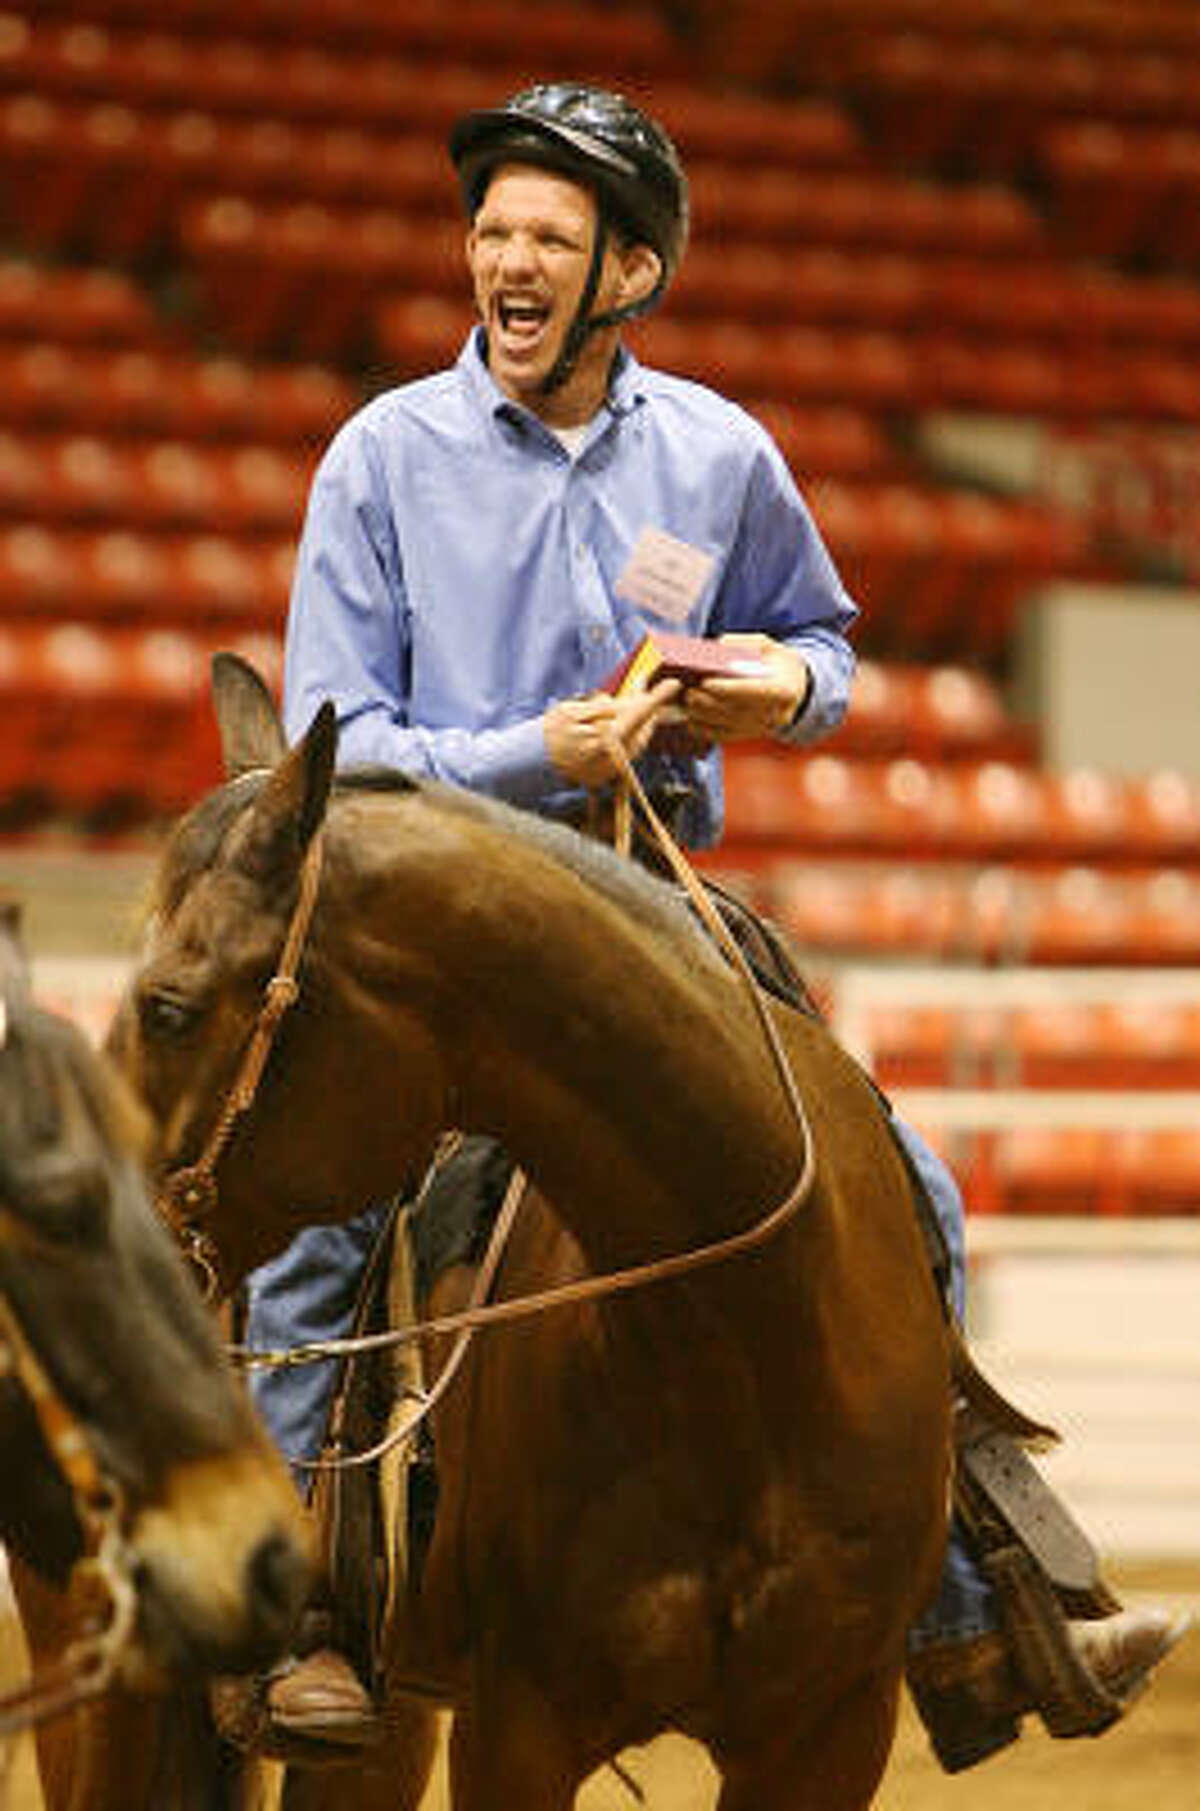 Kevin Johnston, 44, of the Richmond State School, has competed for 12 years at the Houston Livestock Show and Rodeo's Top Hands Horse Show, but he scored his first first-place win on Tuesday.